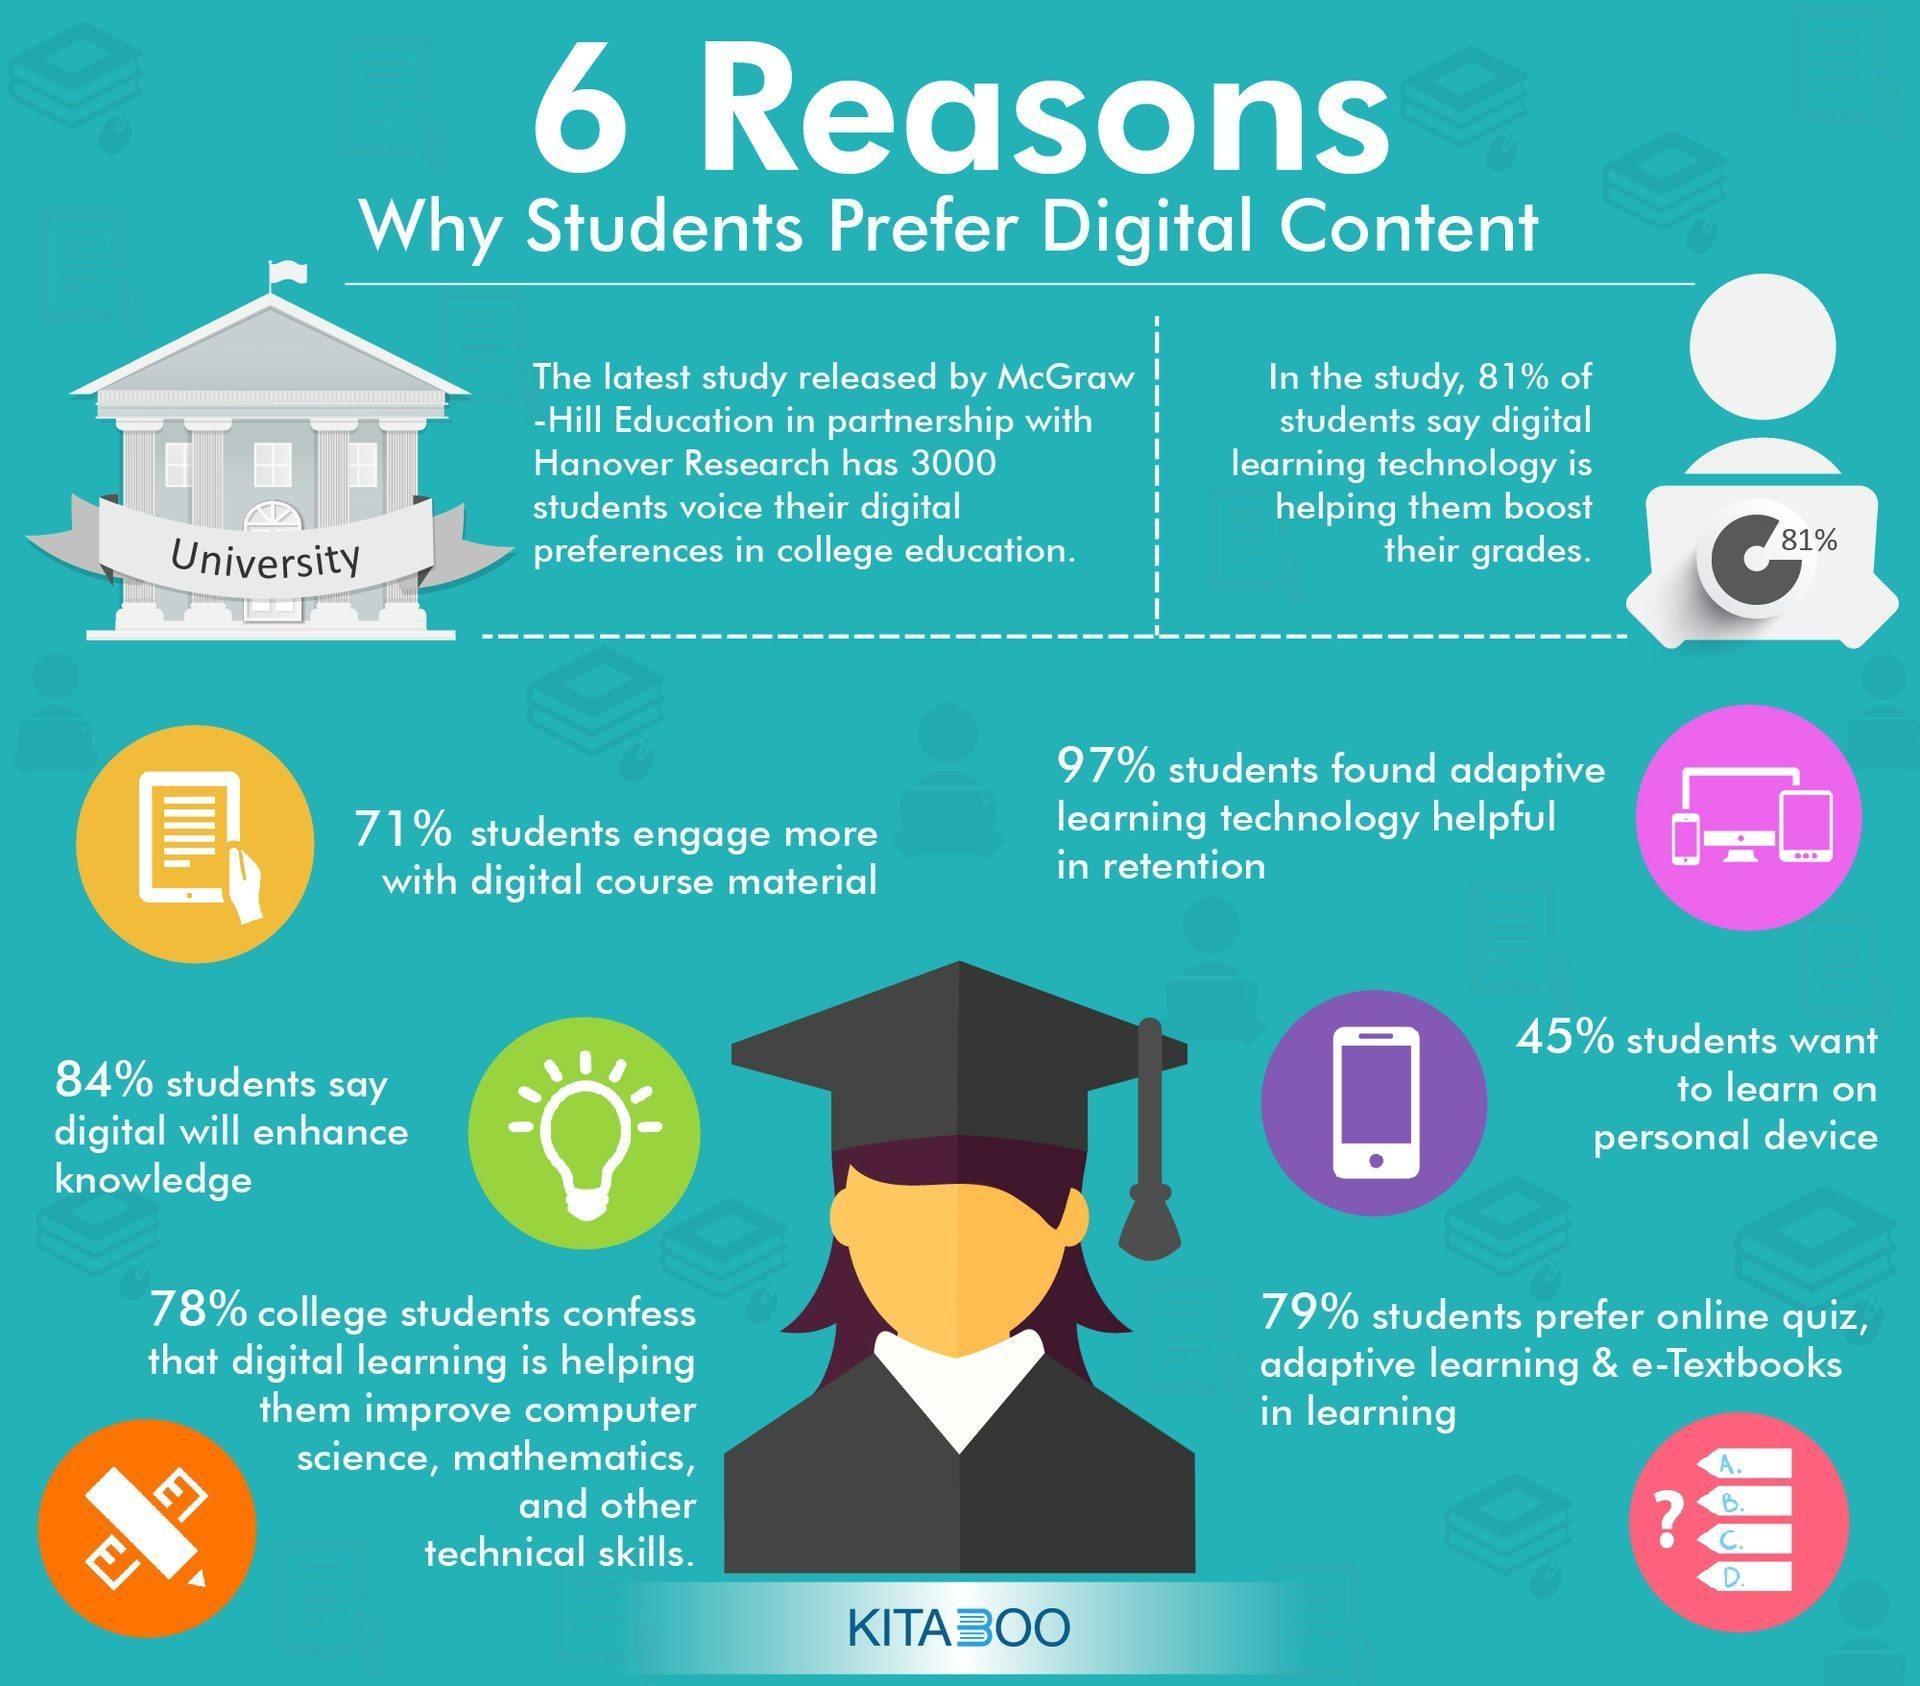 Top 6 Reasons Why Students Prefer Digital Content